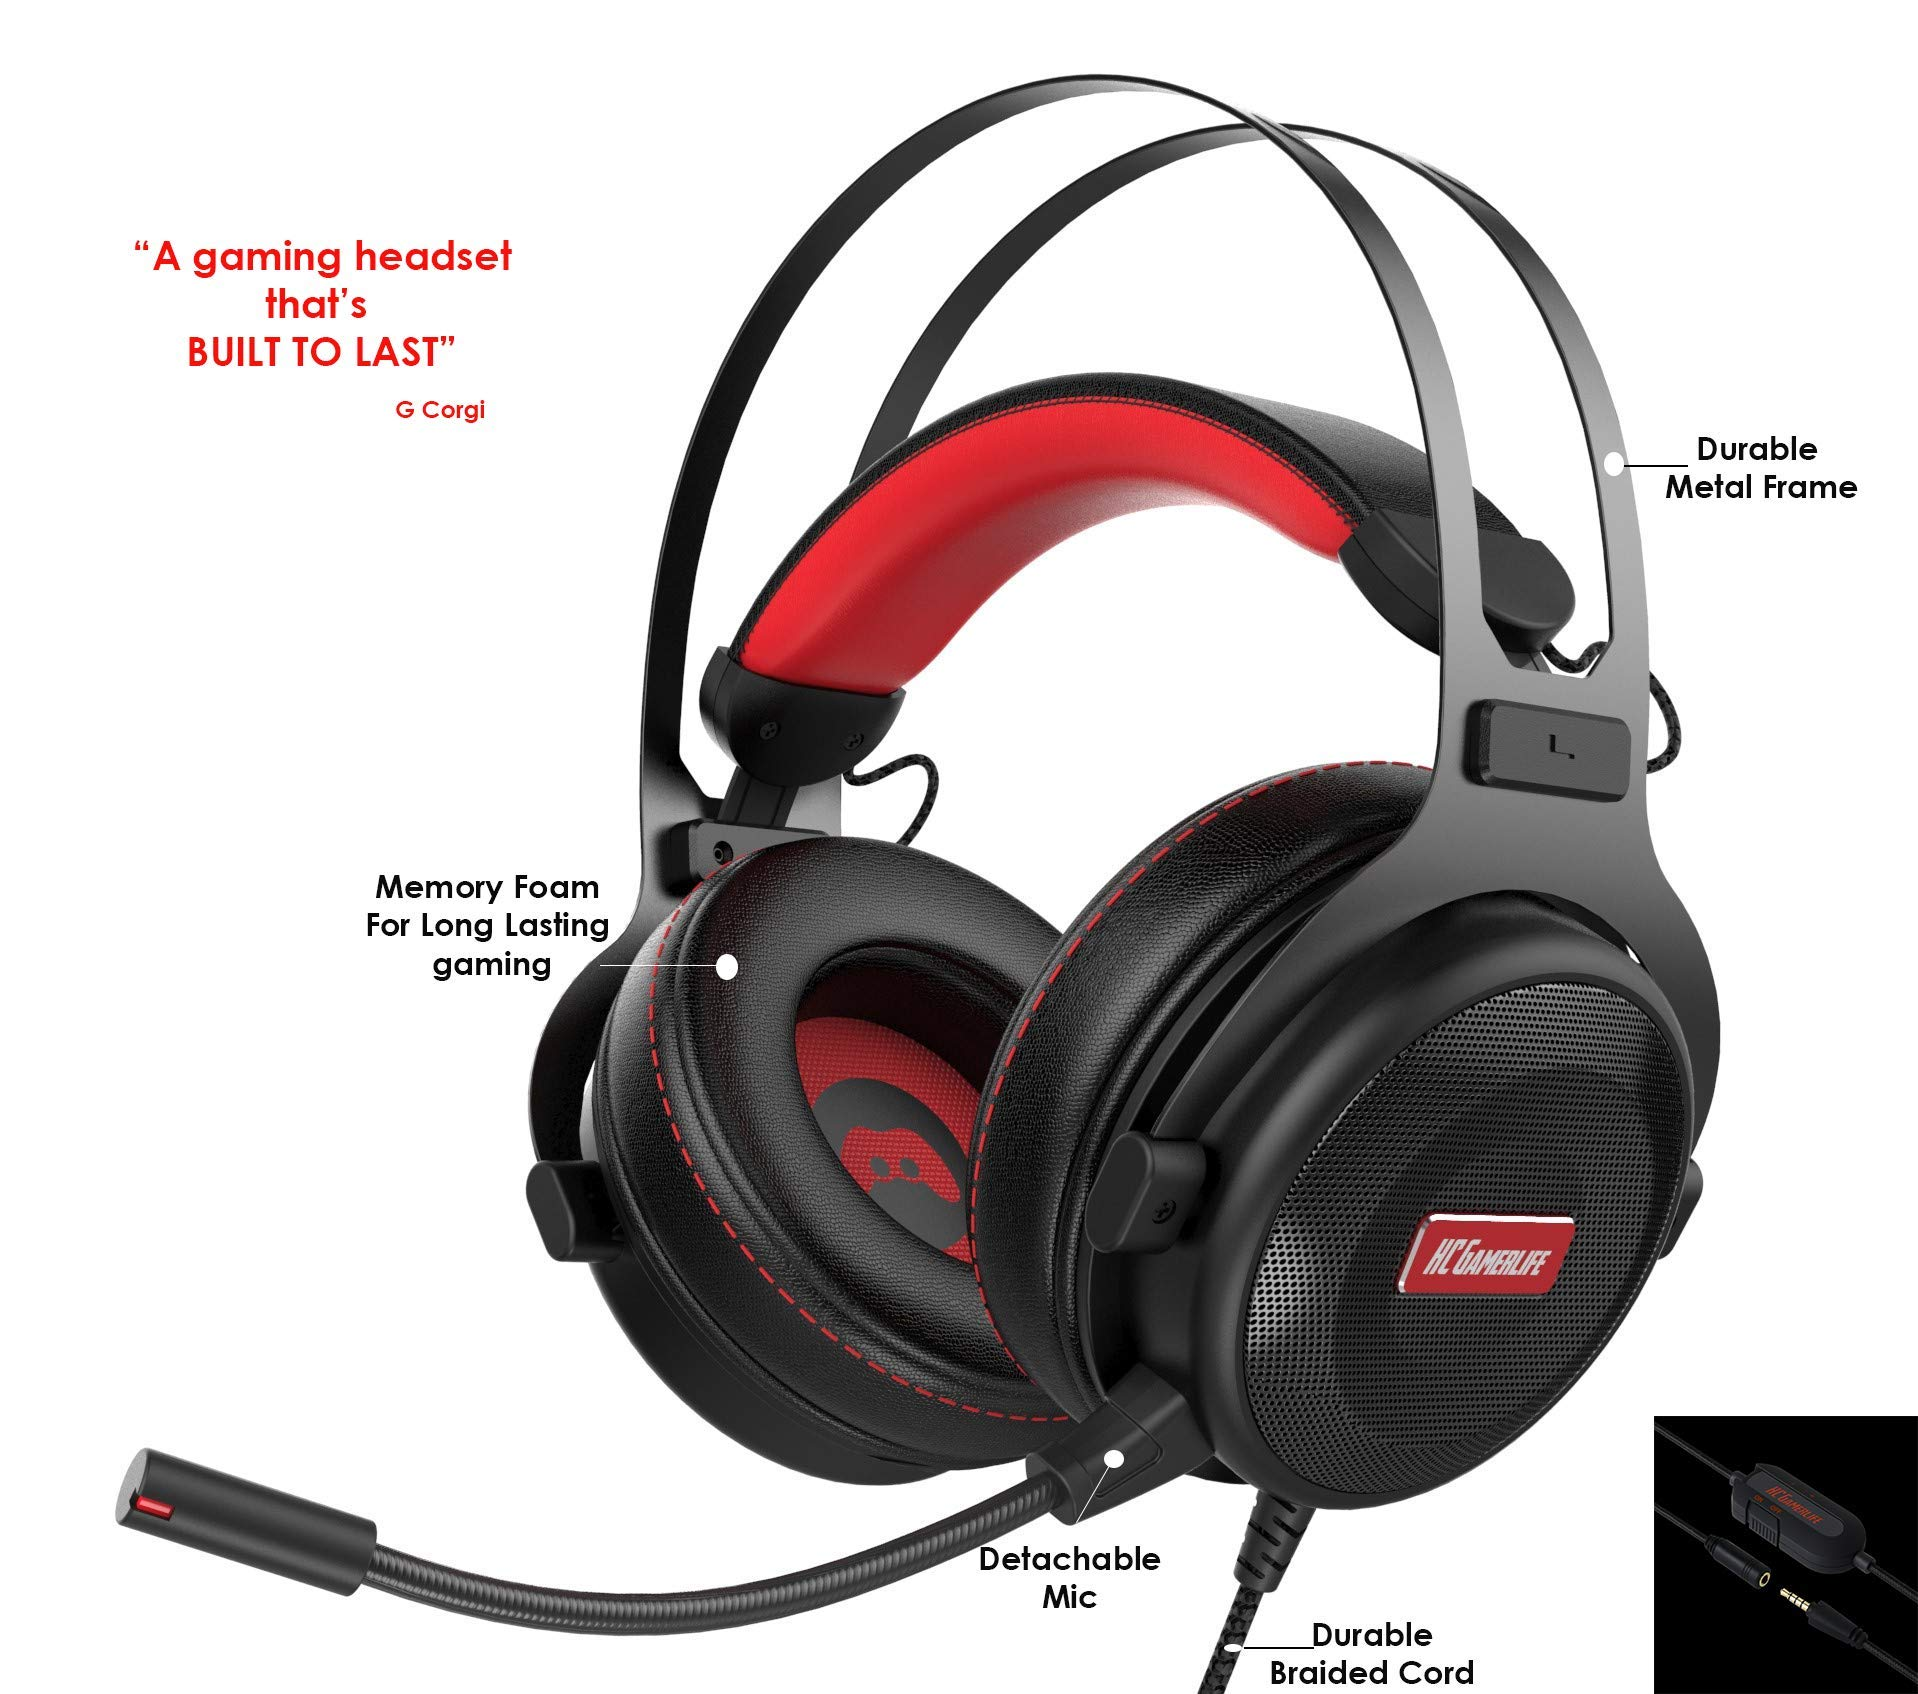 Pro Gaming Headset with Mic (Universal) | Game Changing Premium 3D HD Stereo Sound Video Gamer Wired Headphones for Xbox One, PS4, PC, Laptop and Mobile Device | 3.5mm Connection | HC Gamer Life by HC GAMERLIFE